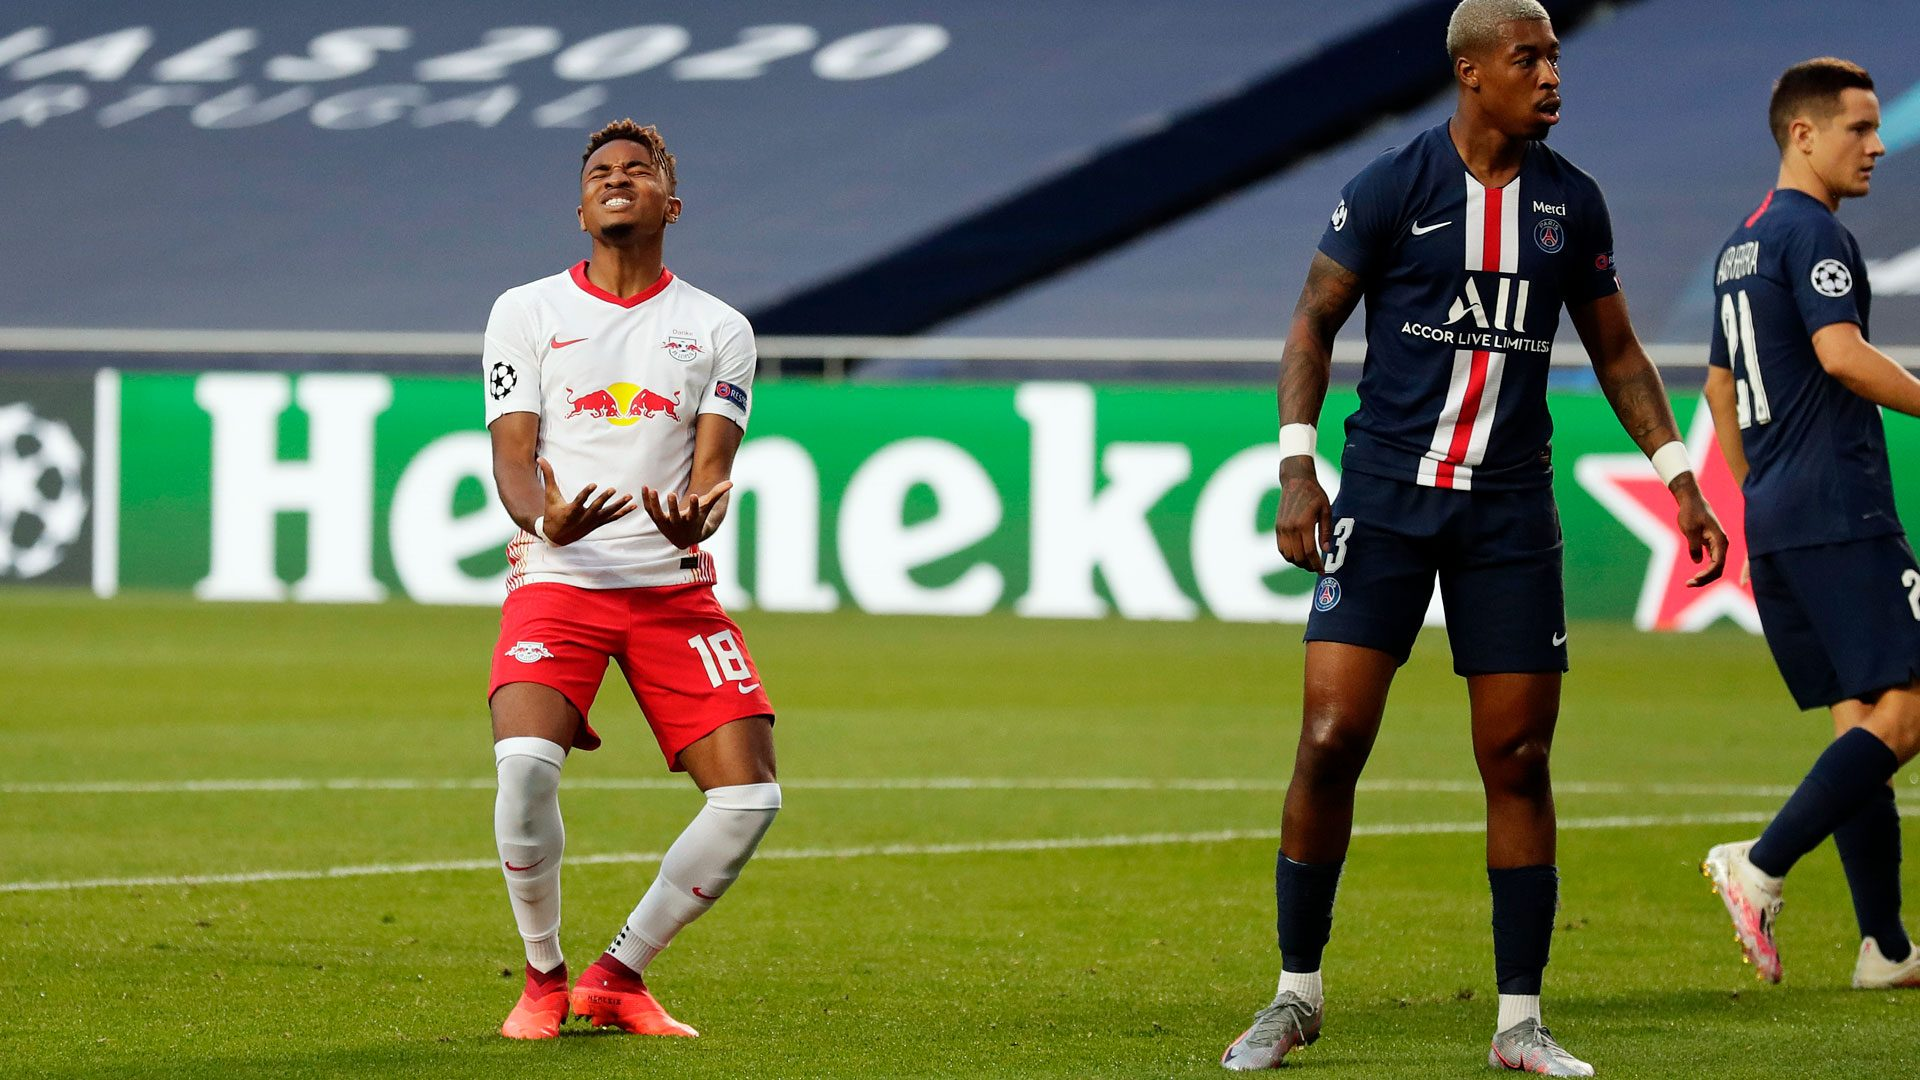 Bundesliga Rb Leipzig 0 3 Paris Saint Germain Uefa Champions League Semi Final As It Happened